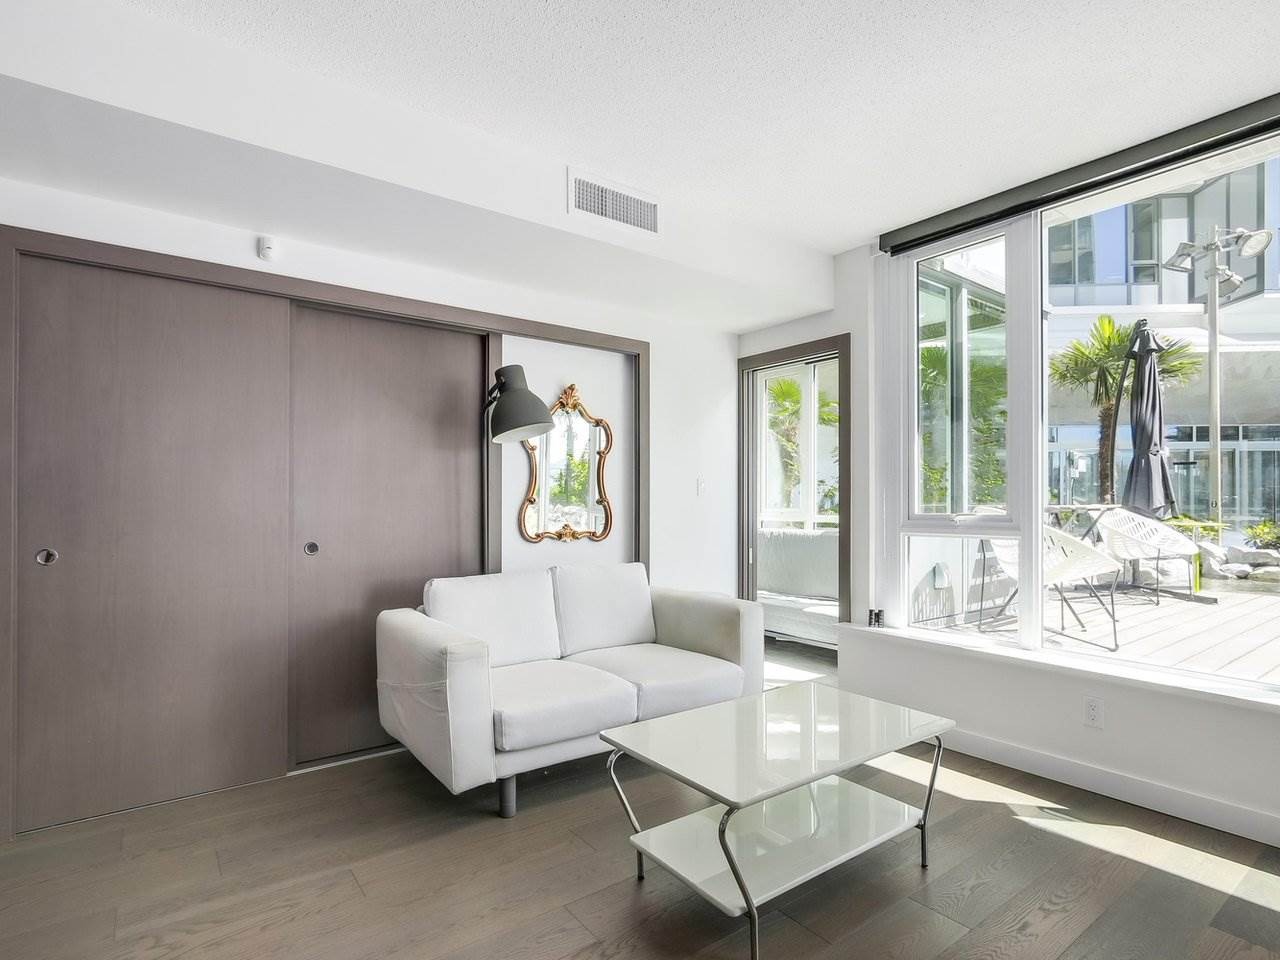 Condo Apartment at 303 68 SMITHE STREET, Unit 303, Vancouver West, British Columbia. Image 4